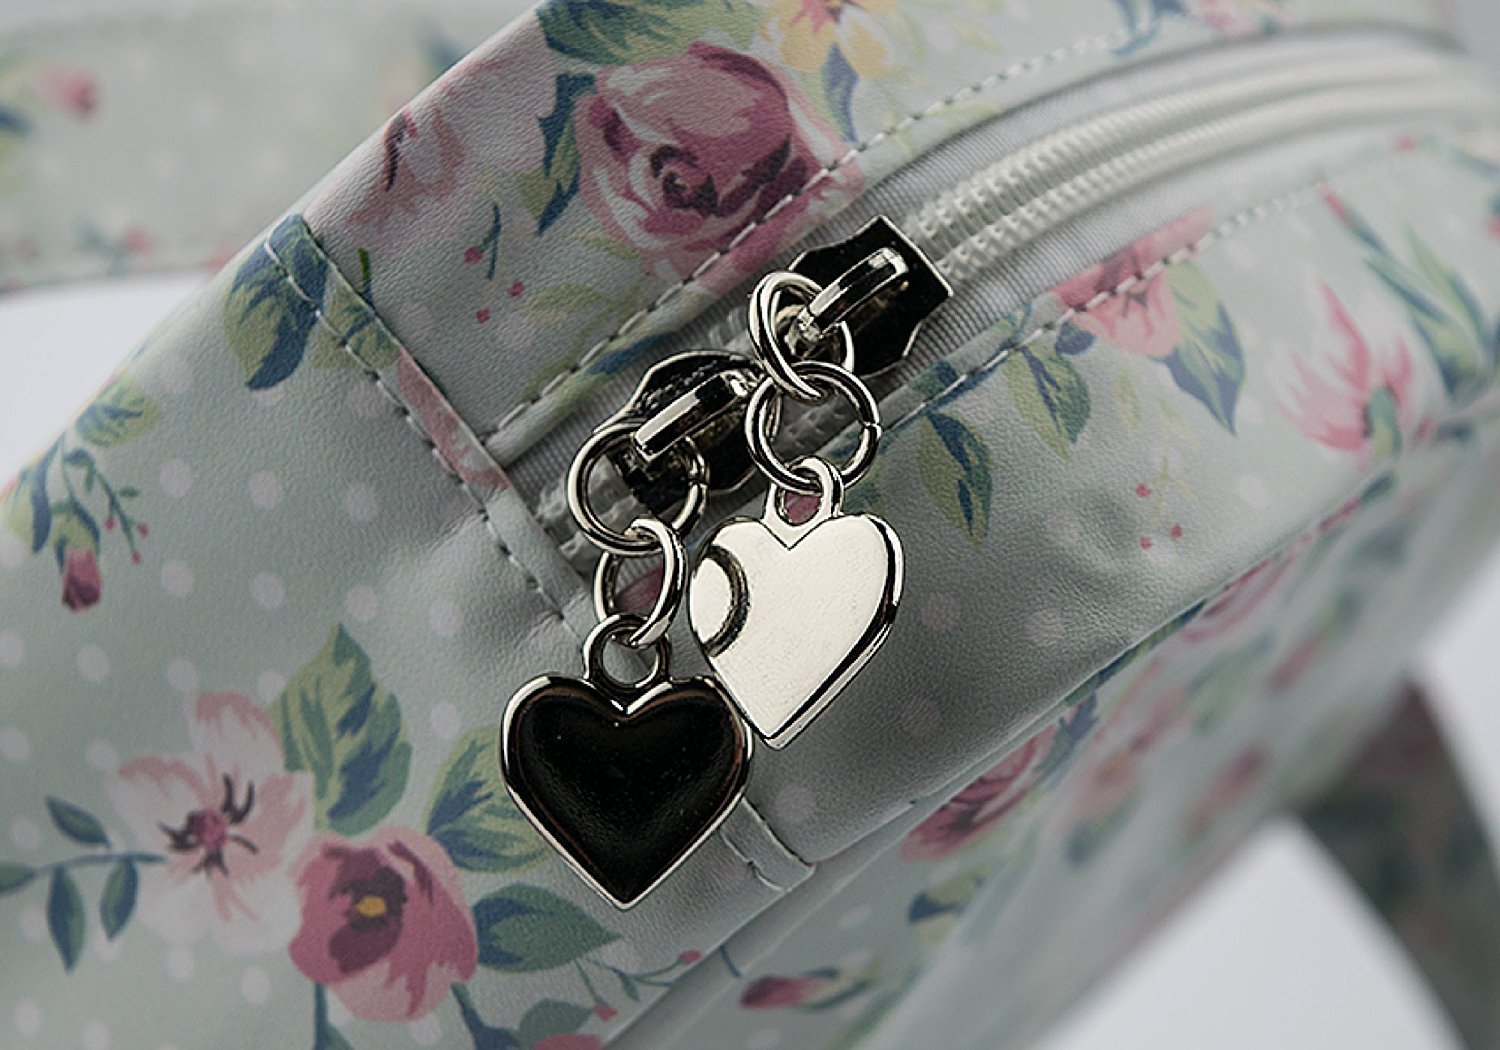 A Hanging Travel Bag Ideal for Makeup and Toiletries With Carrying Handle and Beautiful Stylish Design B1091 Bella and Bear Toiletry Bag for Women